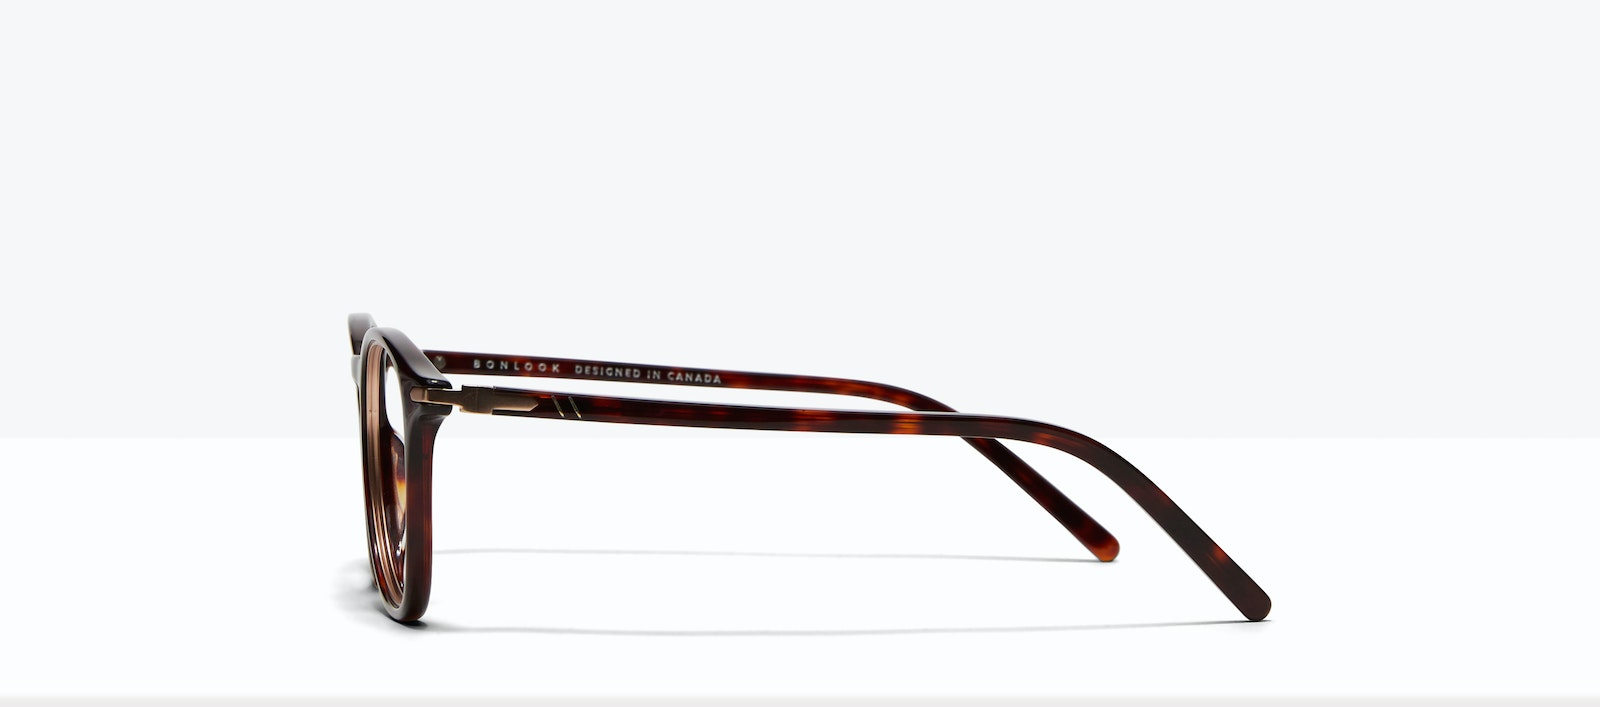 Affordable Fashion Glasses Round Eyeglasses Men Looks Tortoise Side